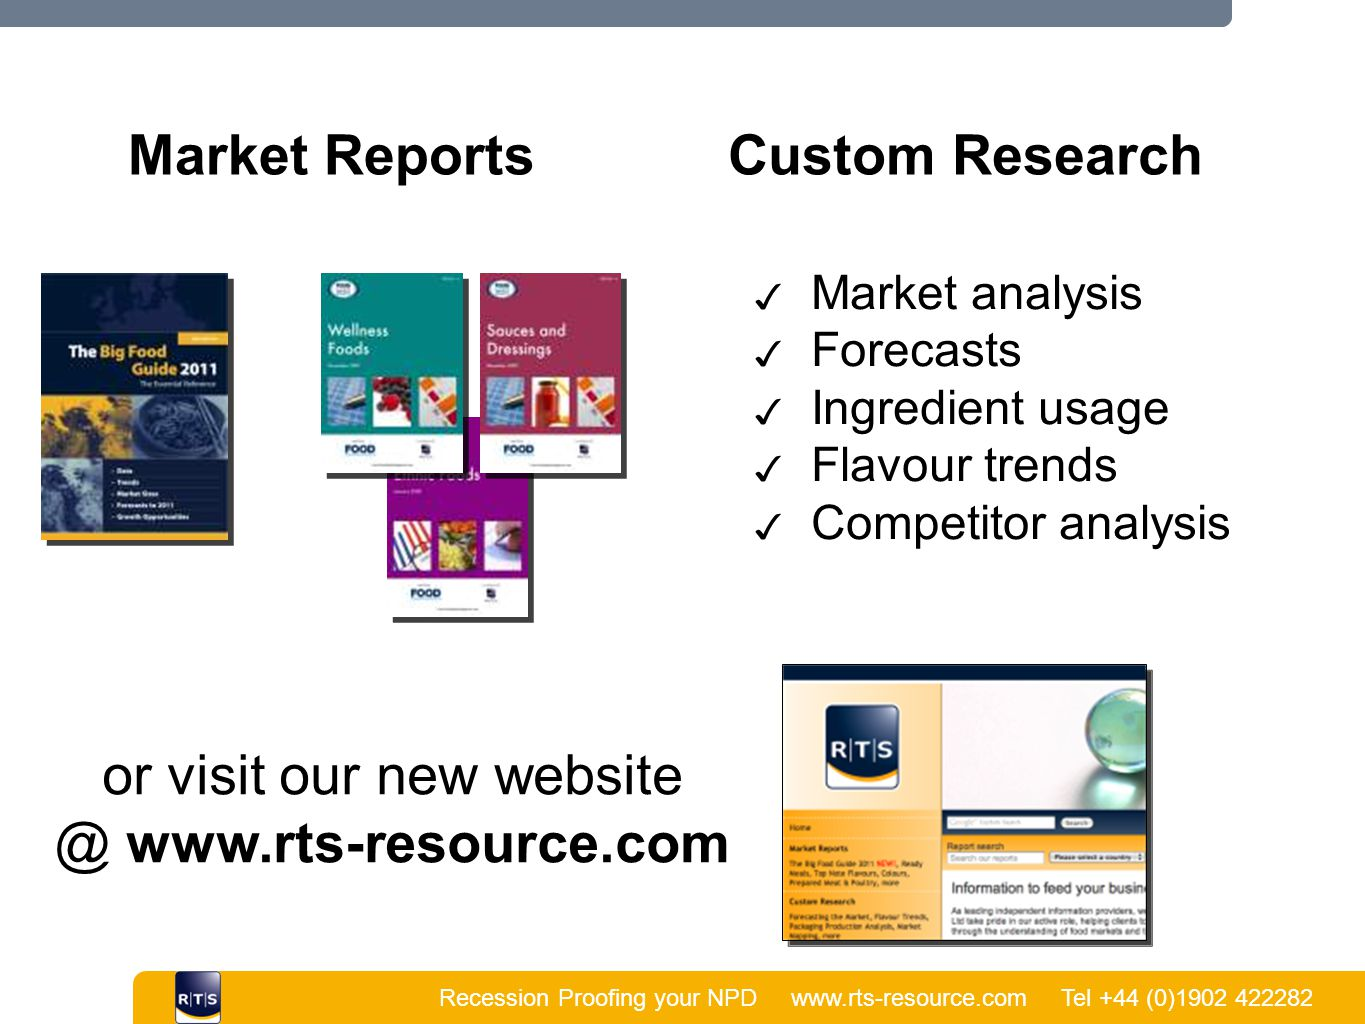 Recession Proofing your NPD www.rts-resource.com Tel +44 (0)1902 422282 | Market ReportsCustom Research or visit our new website @ www.rts-resource.co